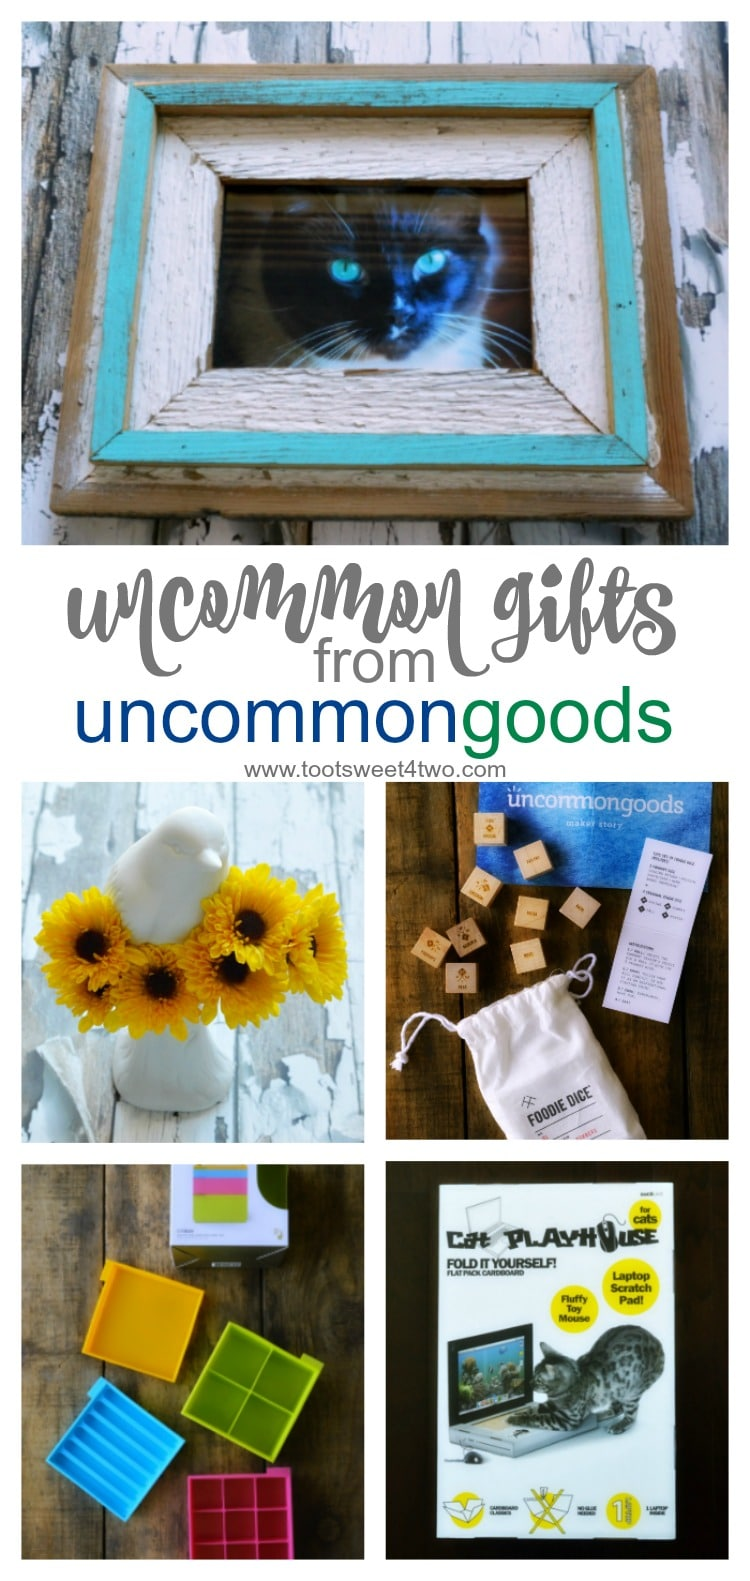 What defines gifts as uncommon goods? Words that come to mind are unique, creative, extraordinary, surprising, exceptional, singular. How do you find the perfect birthday present for the person who has everything? If you are looking for unique gifts, unusual gifts or uncommon gifts for a variety of reasons, UncommonGoods is a resource not to miss. Looking for gifts for foodies? Check. Looking for Christmas present ideas for him? Check. Looking for unique corporate holiday gifts or client gifts? Check. Looking for creative gift ideas that make a statement? Check. UncommonGoods is the perfect resource for great gifts ideas solving the age old gift giving dilemma of what gift to get for any and every special occasion. | www.tootsweet4two.com